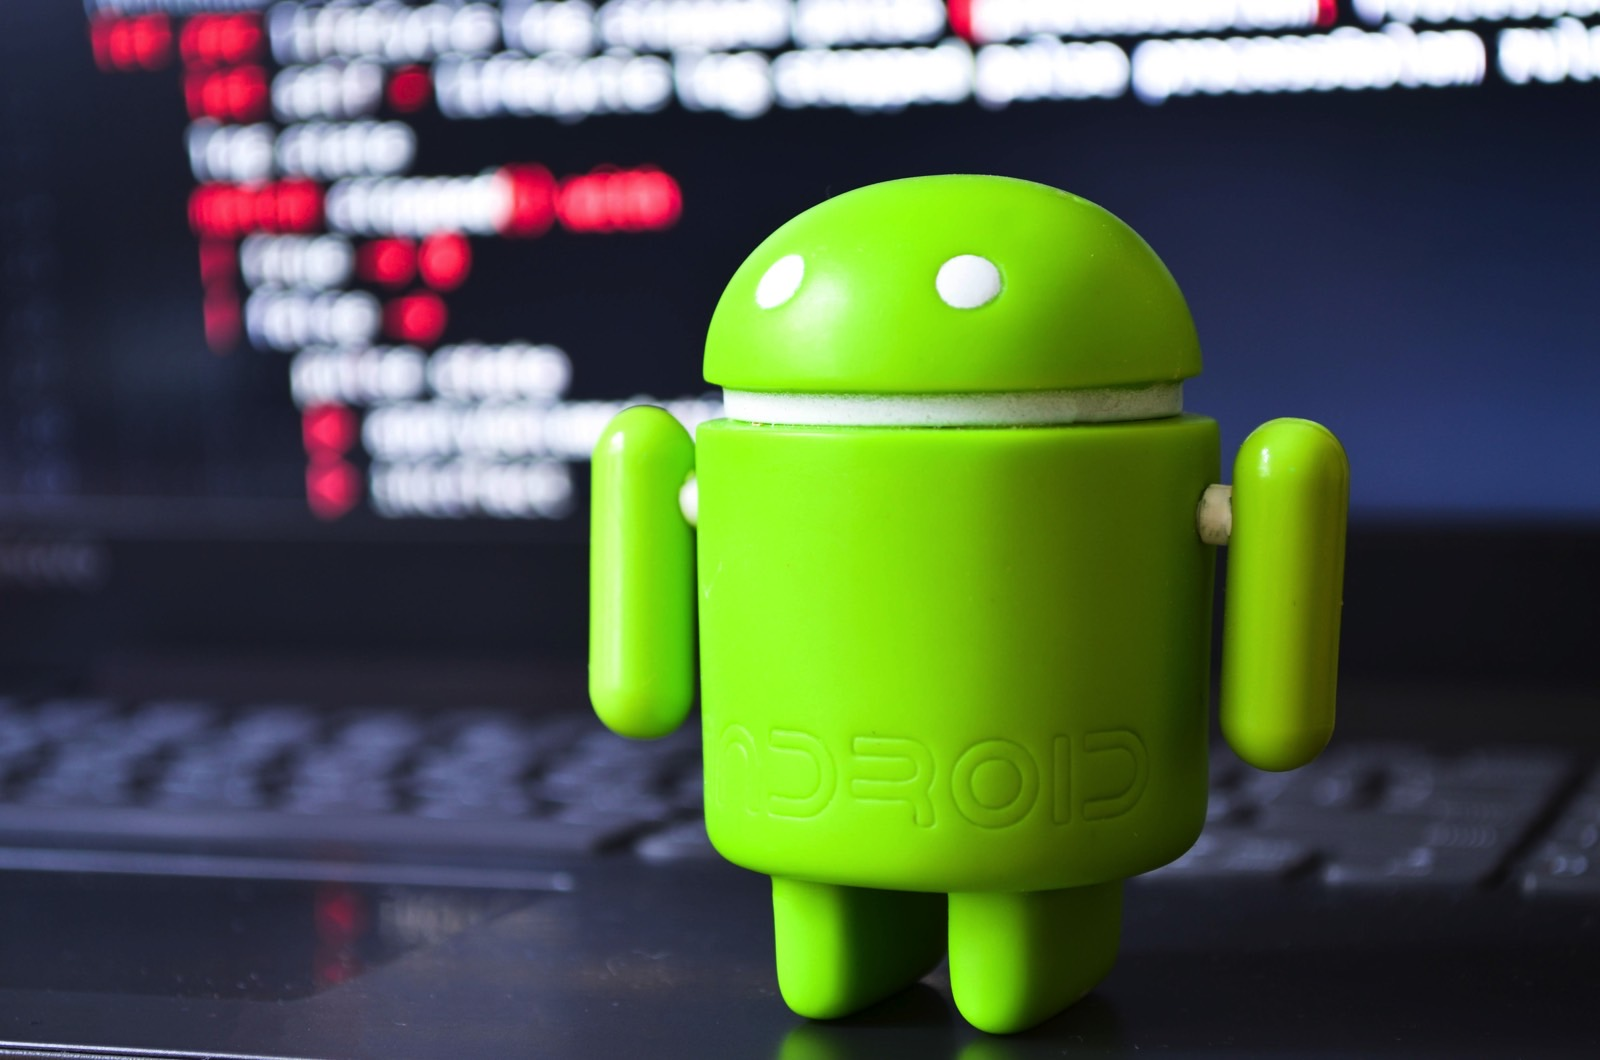 <p>If you use any of these Android Programs, your personal data Could be Vulnerable thumbnail